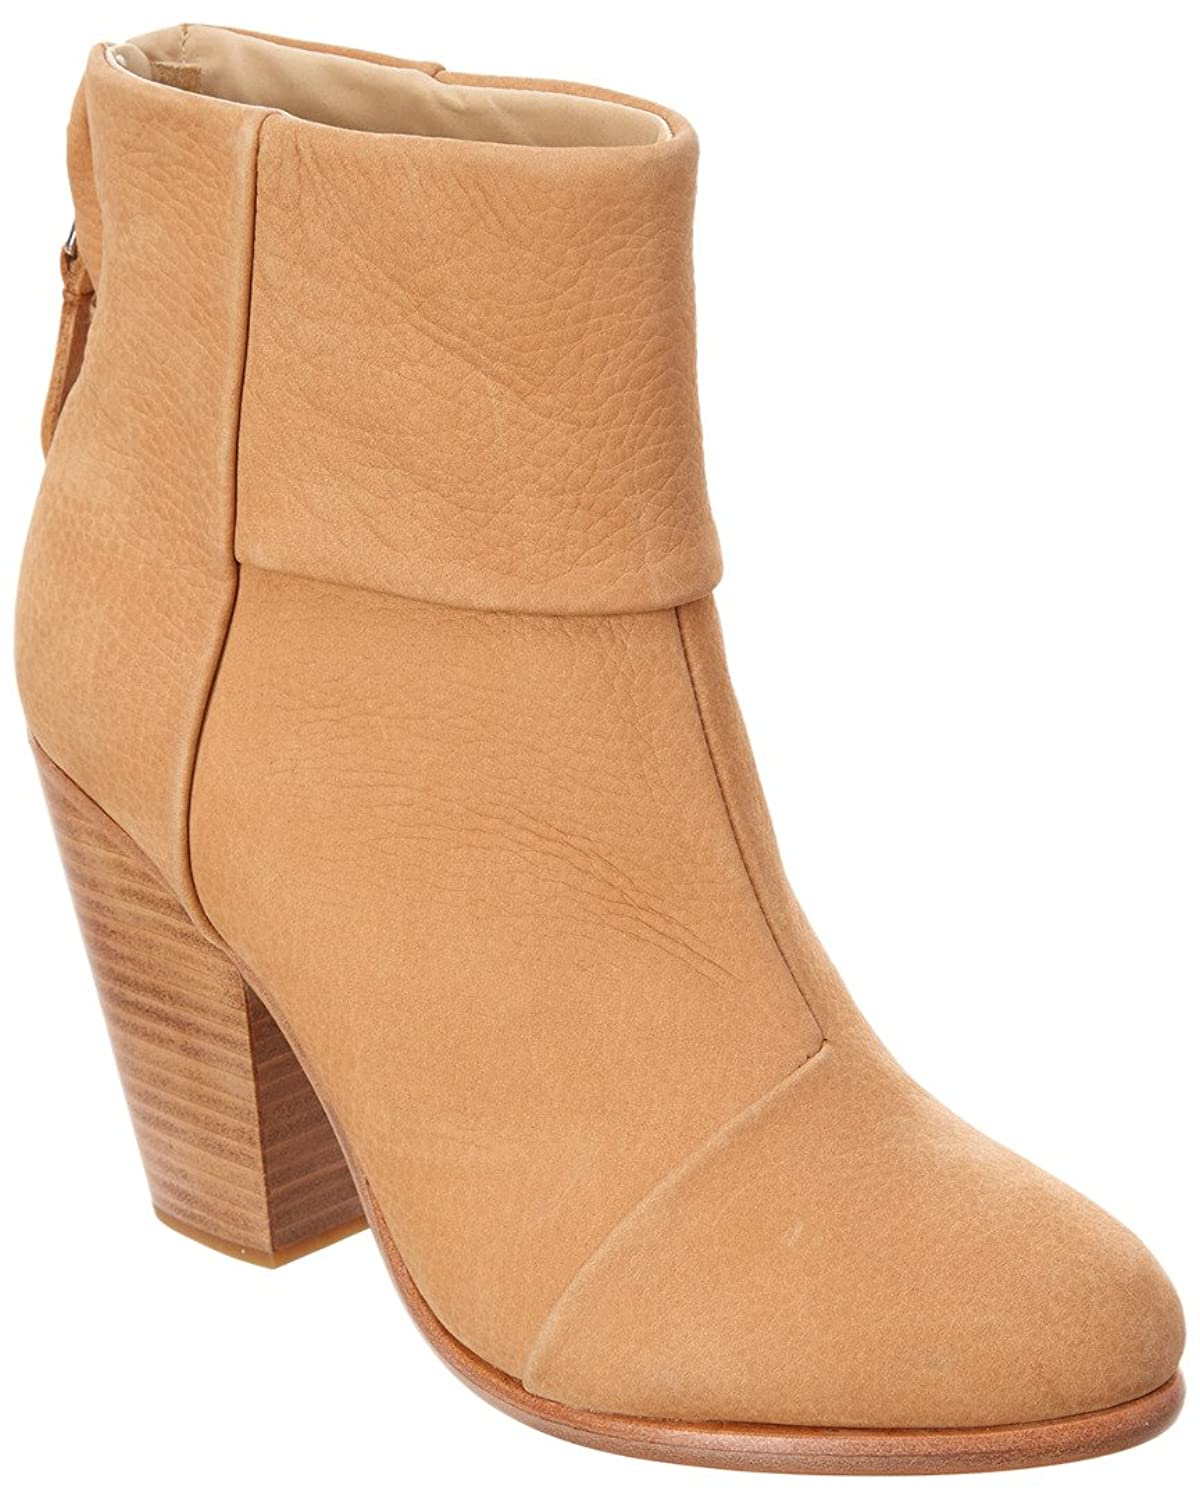 rag & bone Leather Ankle Boot, 11, Brown -